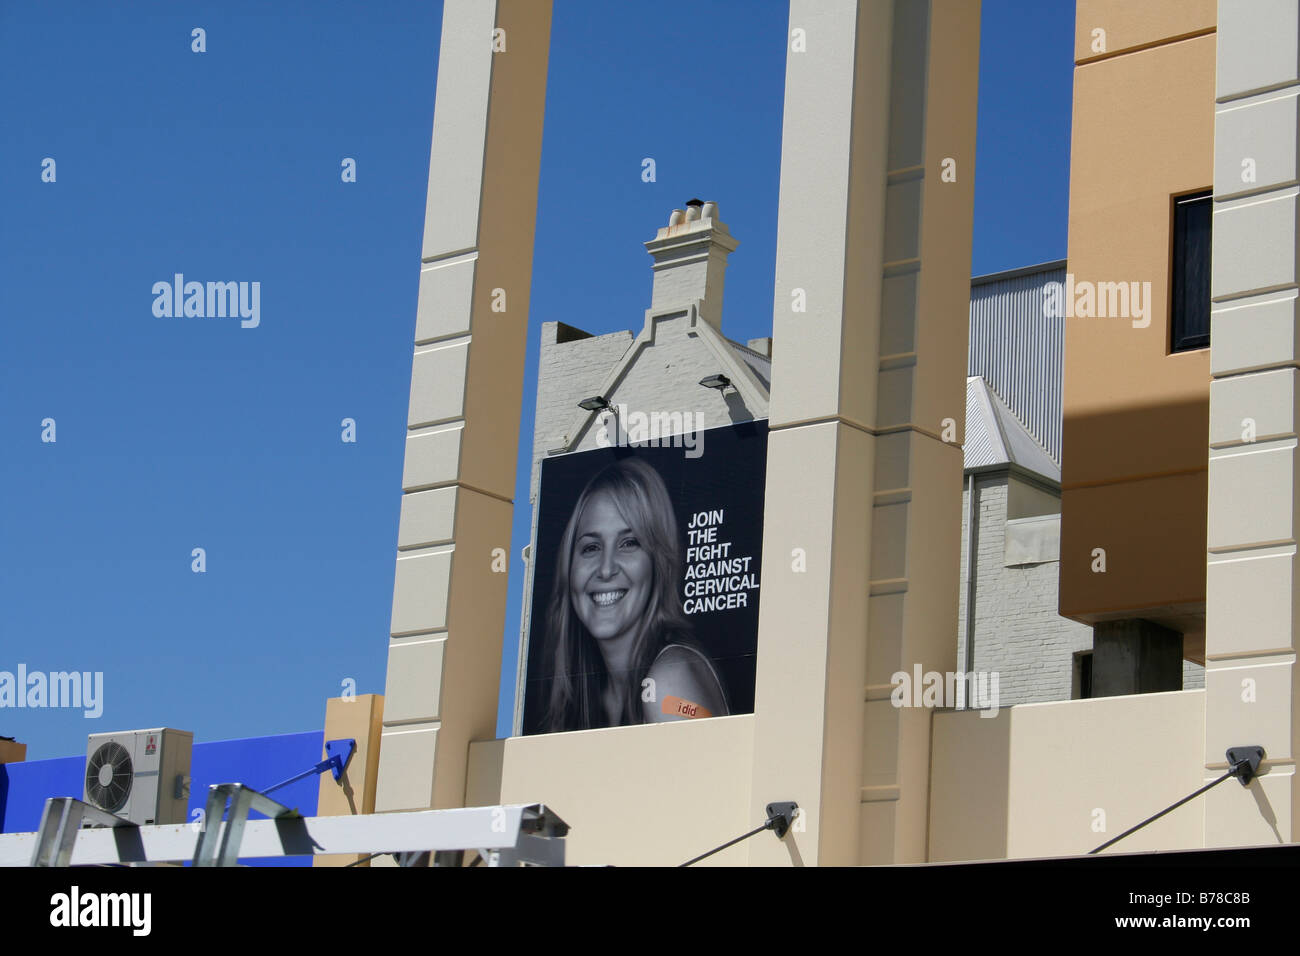 Join the fight against cervical cancer advert in perth city - Stock Image